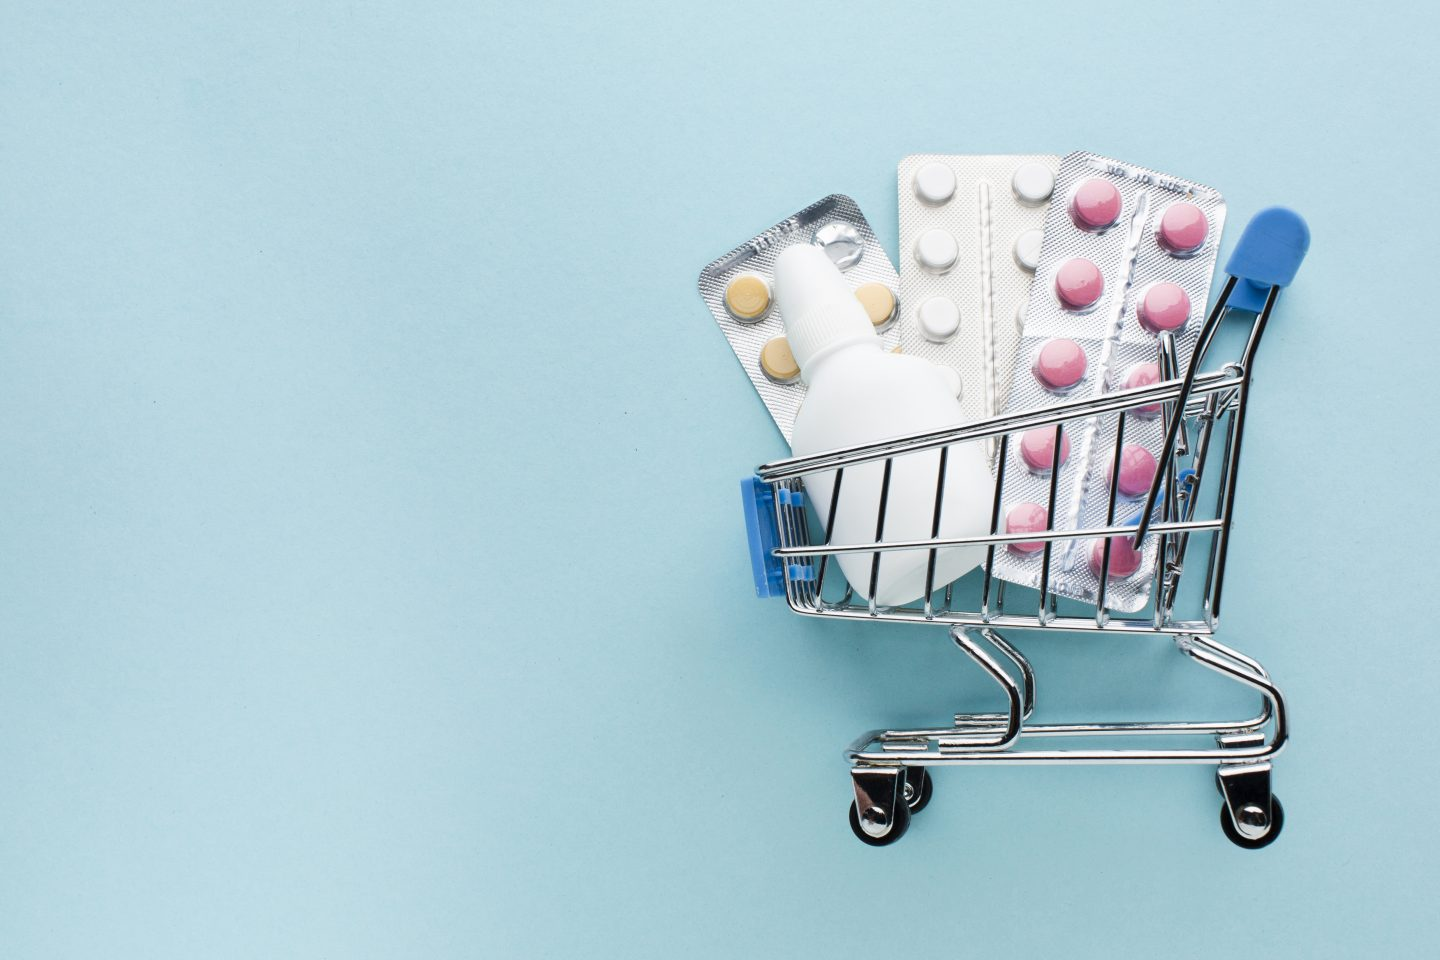 mini trolley with blister packs and plastic eye drop bottle online prescription service